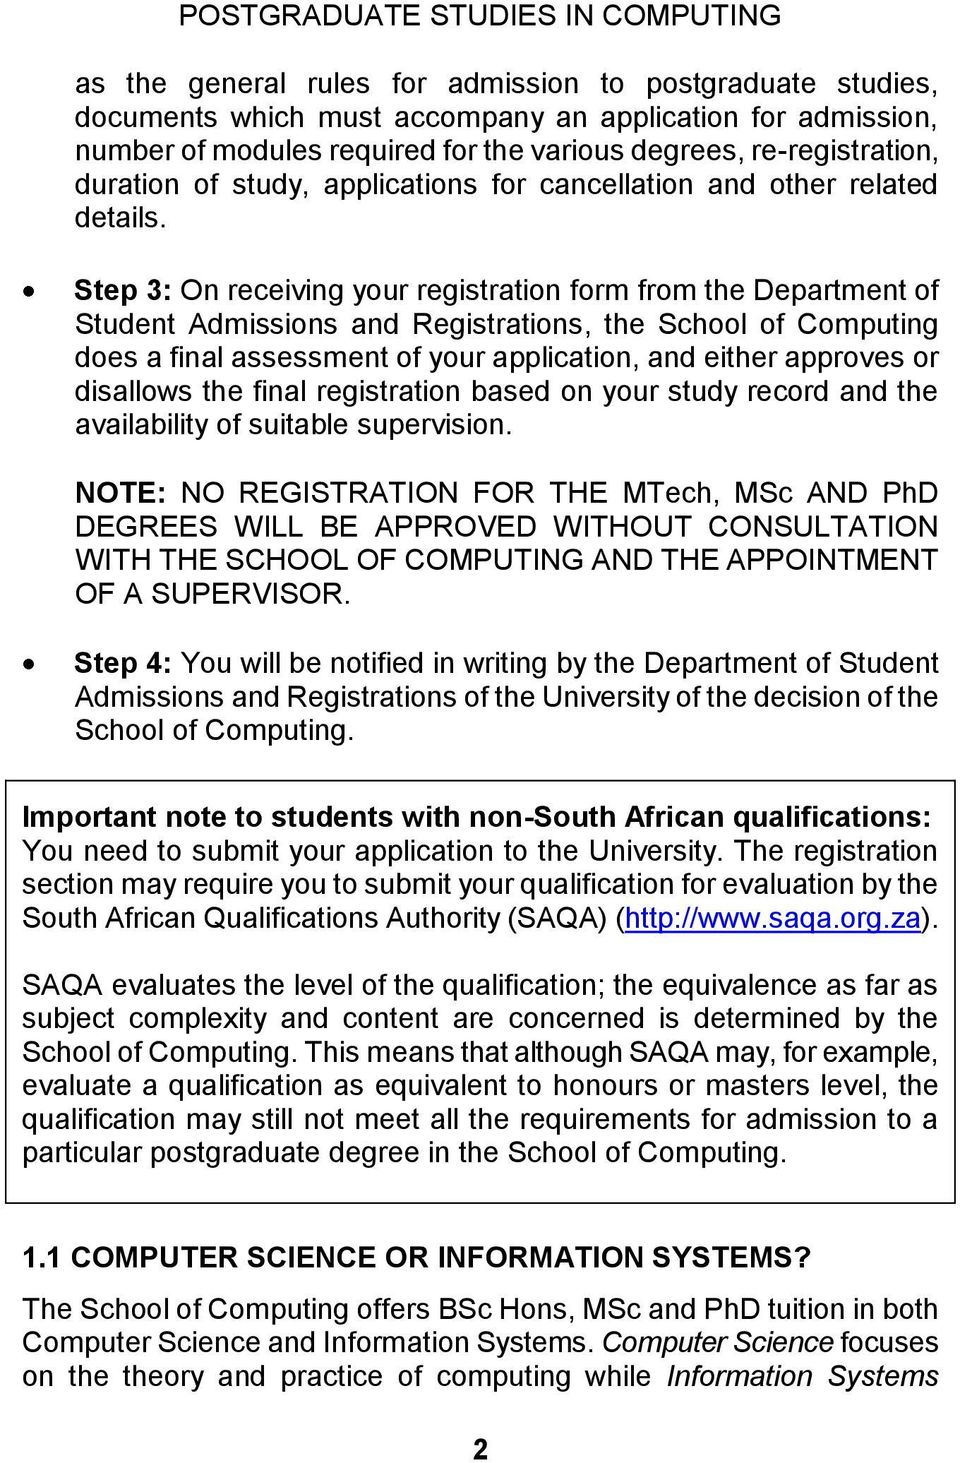 Step 3: On receiving your registration form from the Department of Student Admissions and Registrations, the School of Computing does a final assessment of your application, and either approves or